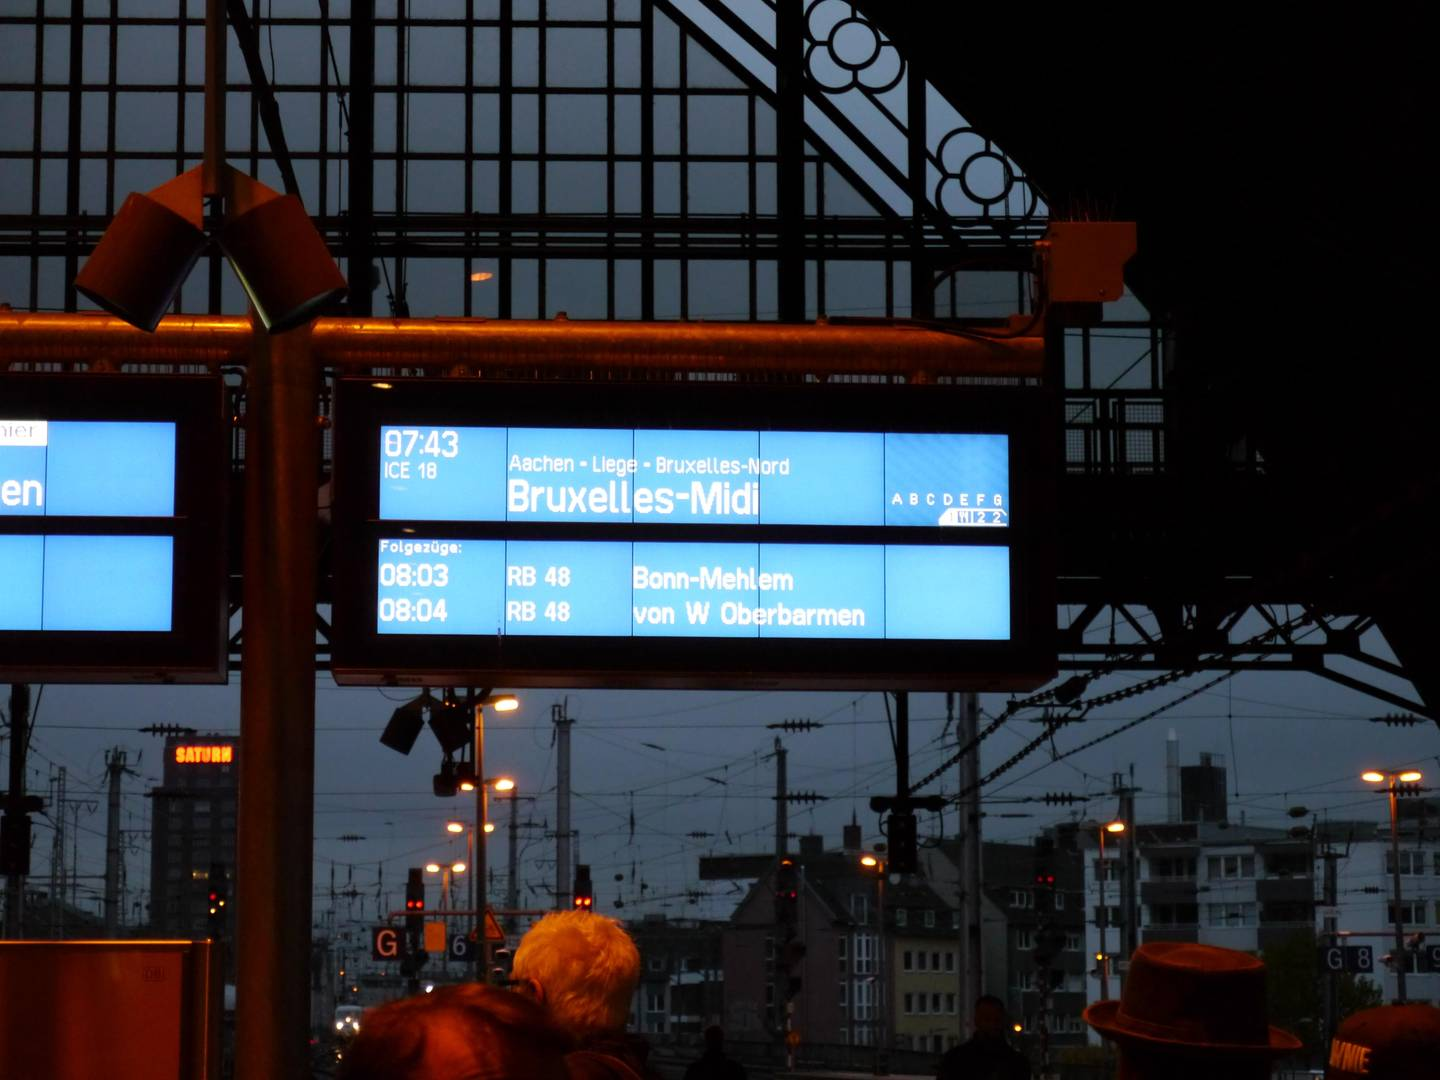 Display of the train to Brussels at the main station of Cologne.